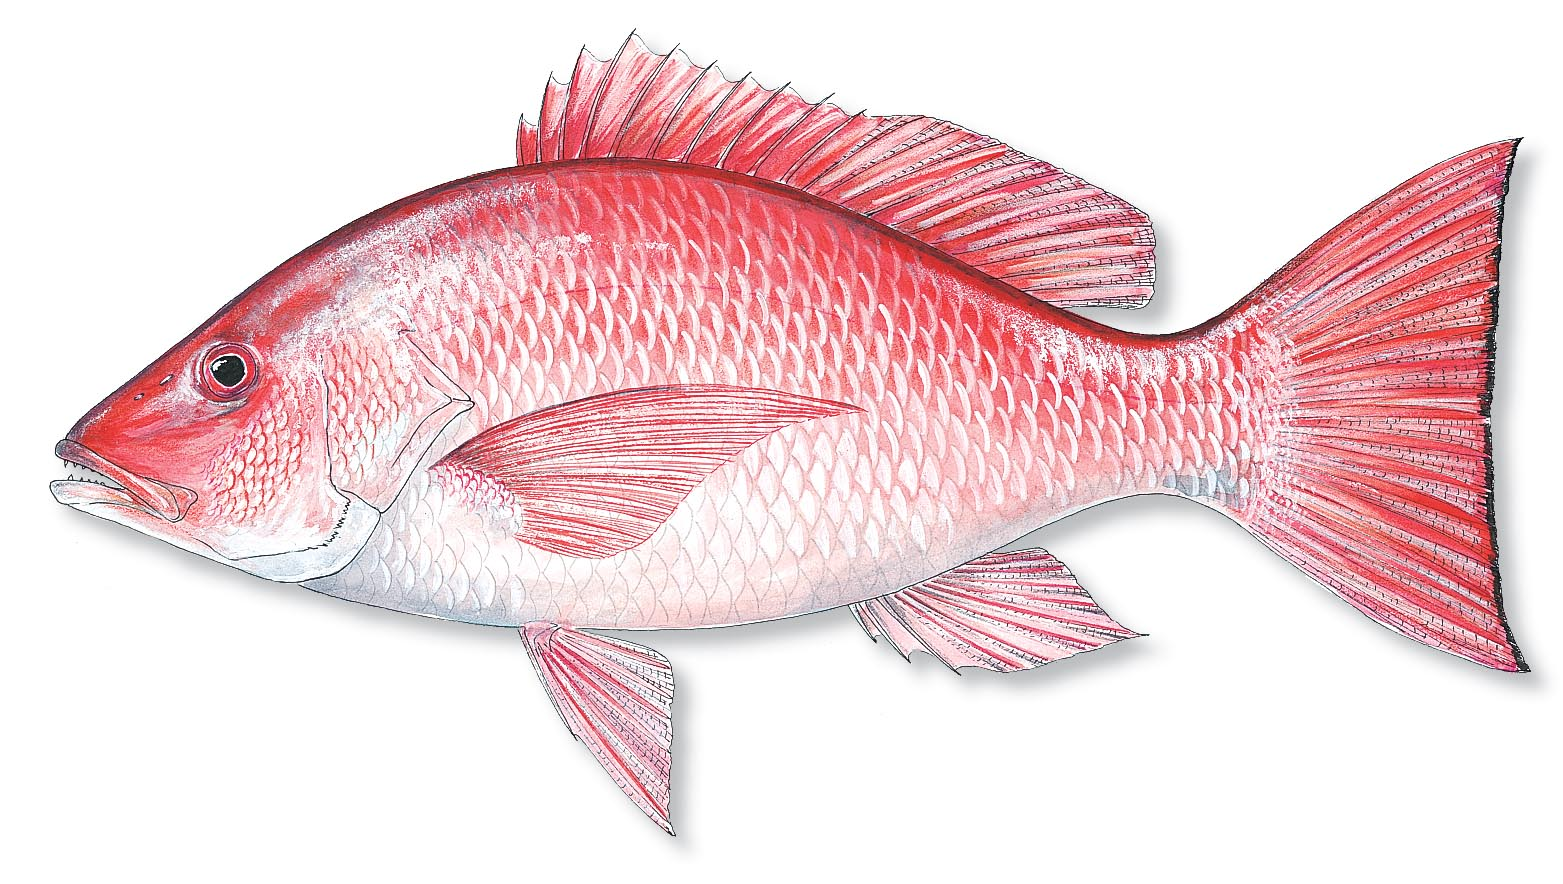 Red Snapper To Open In South Atlantic This Weekend   Florida Sportsman